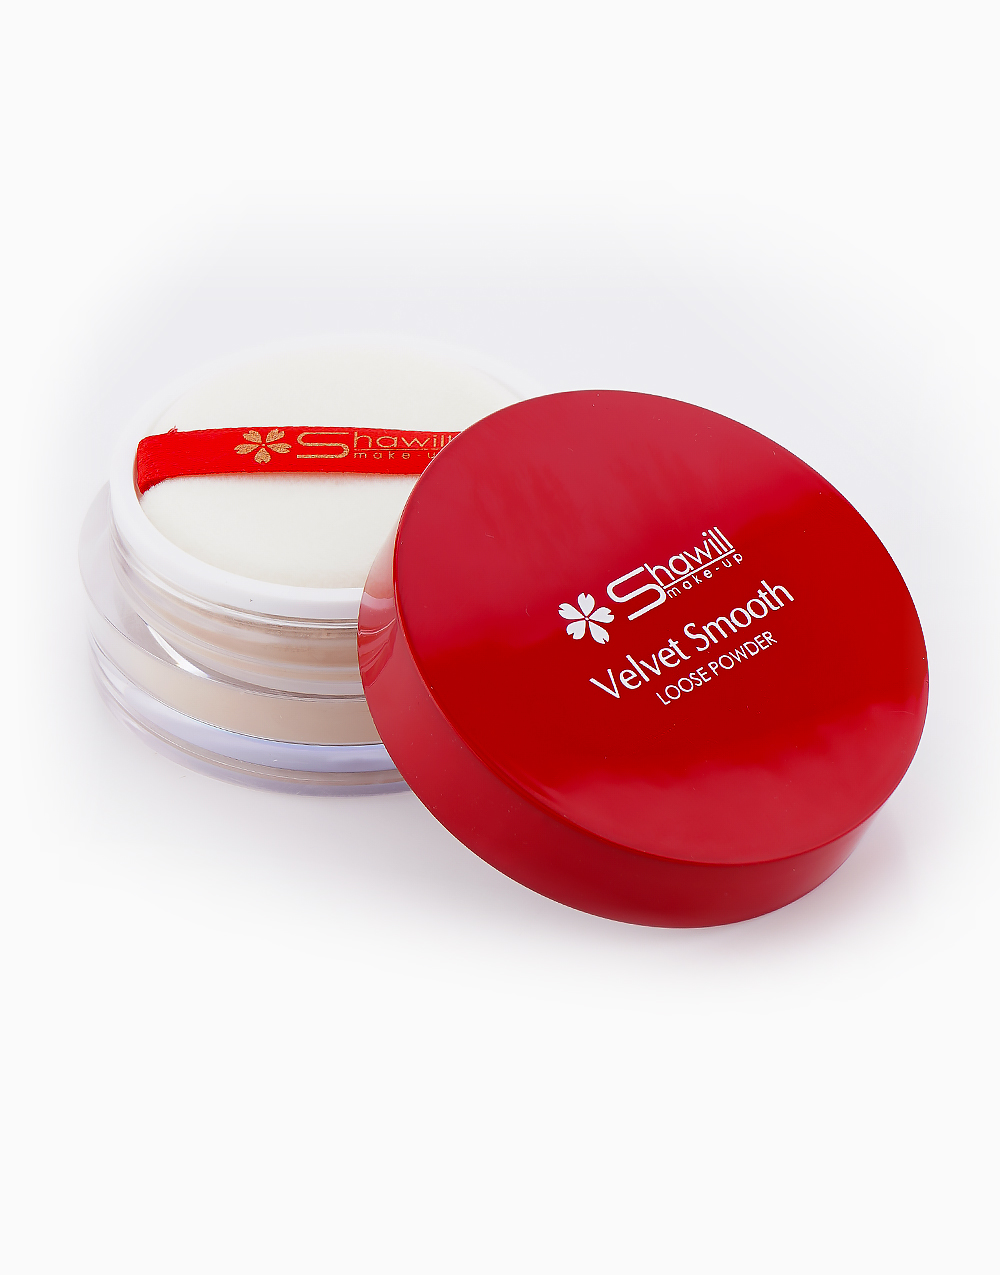 Velvet Smooth Loose Powder by Shawill Cosmetics | #1